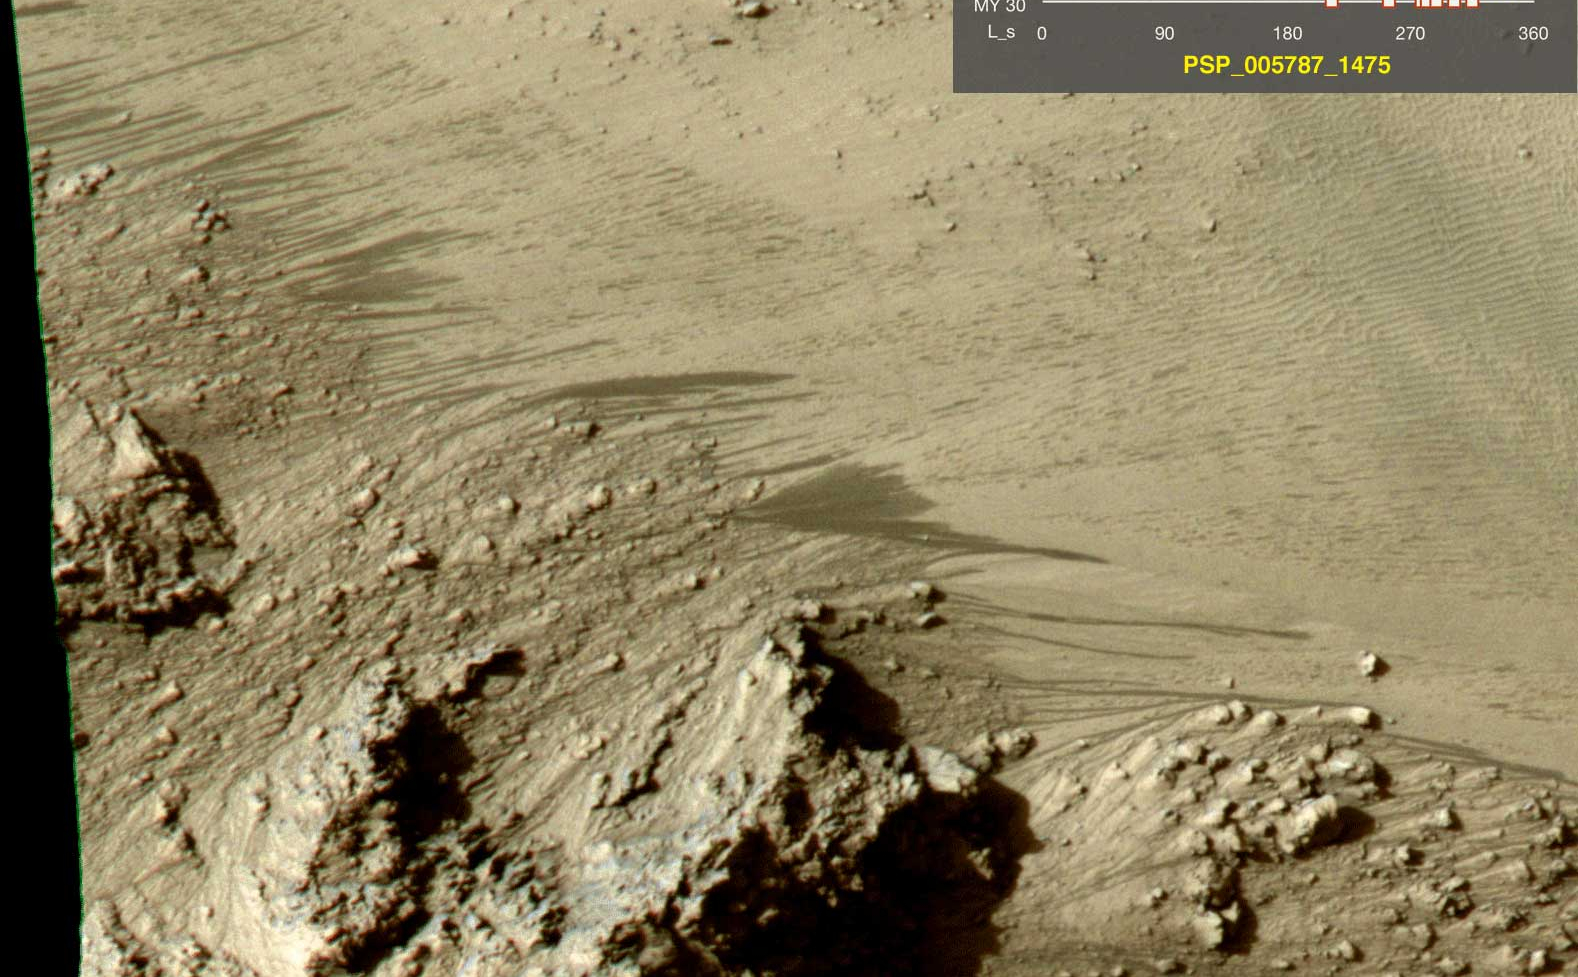 Aerial view of water flows on Mars.